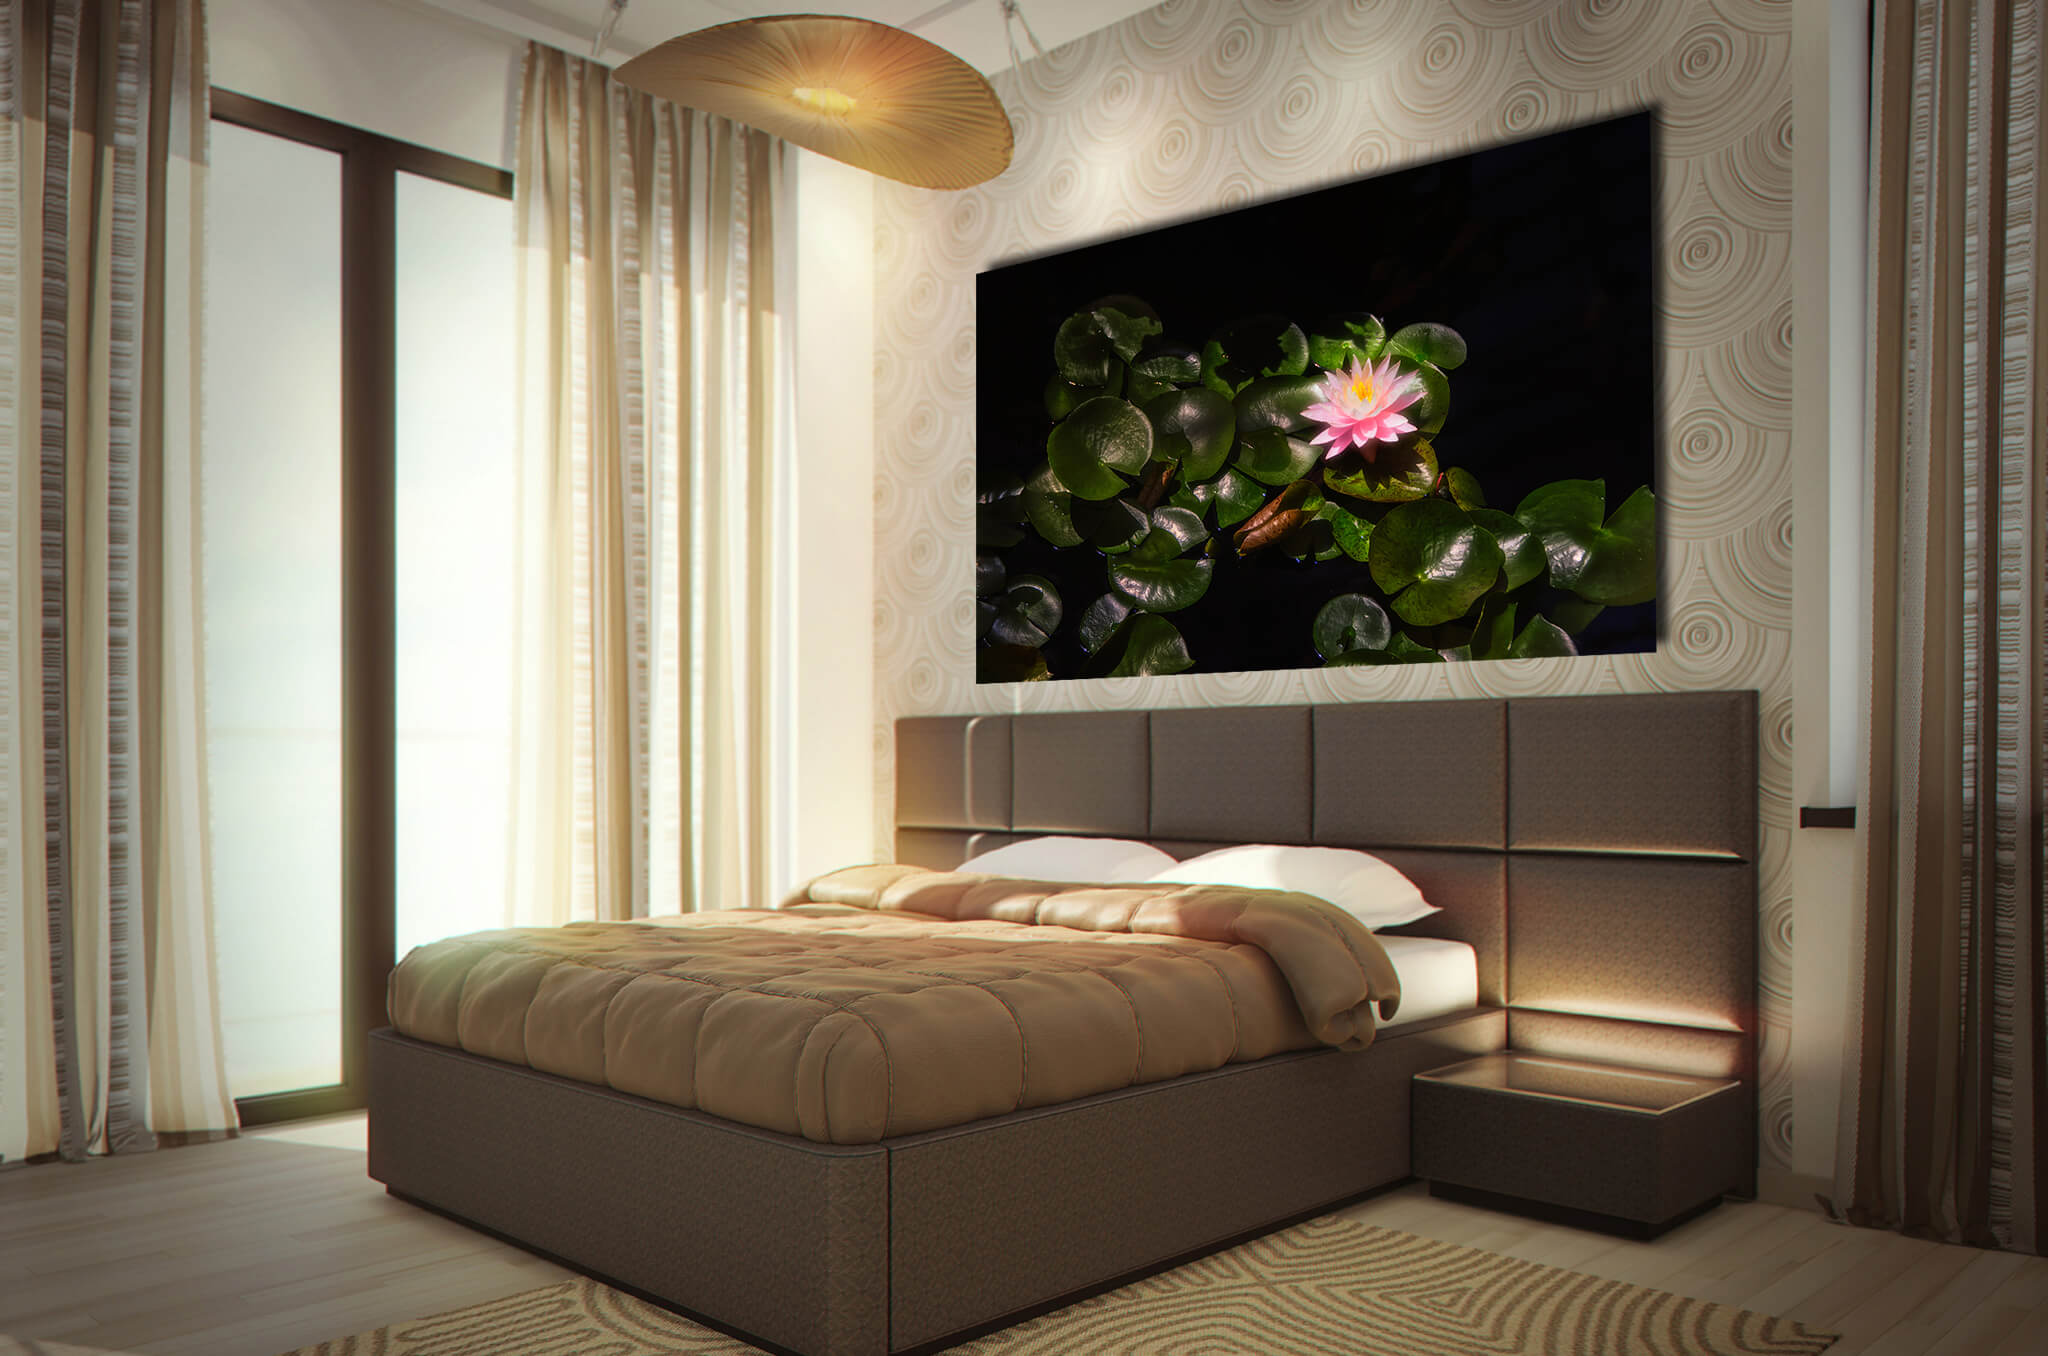 Bedroom Flower Art Wall  Ideas For Franklin Arts